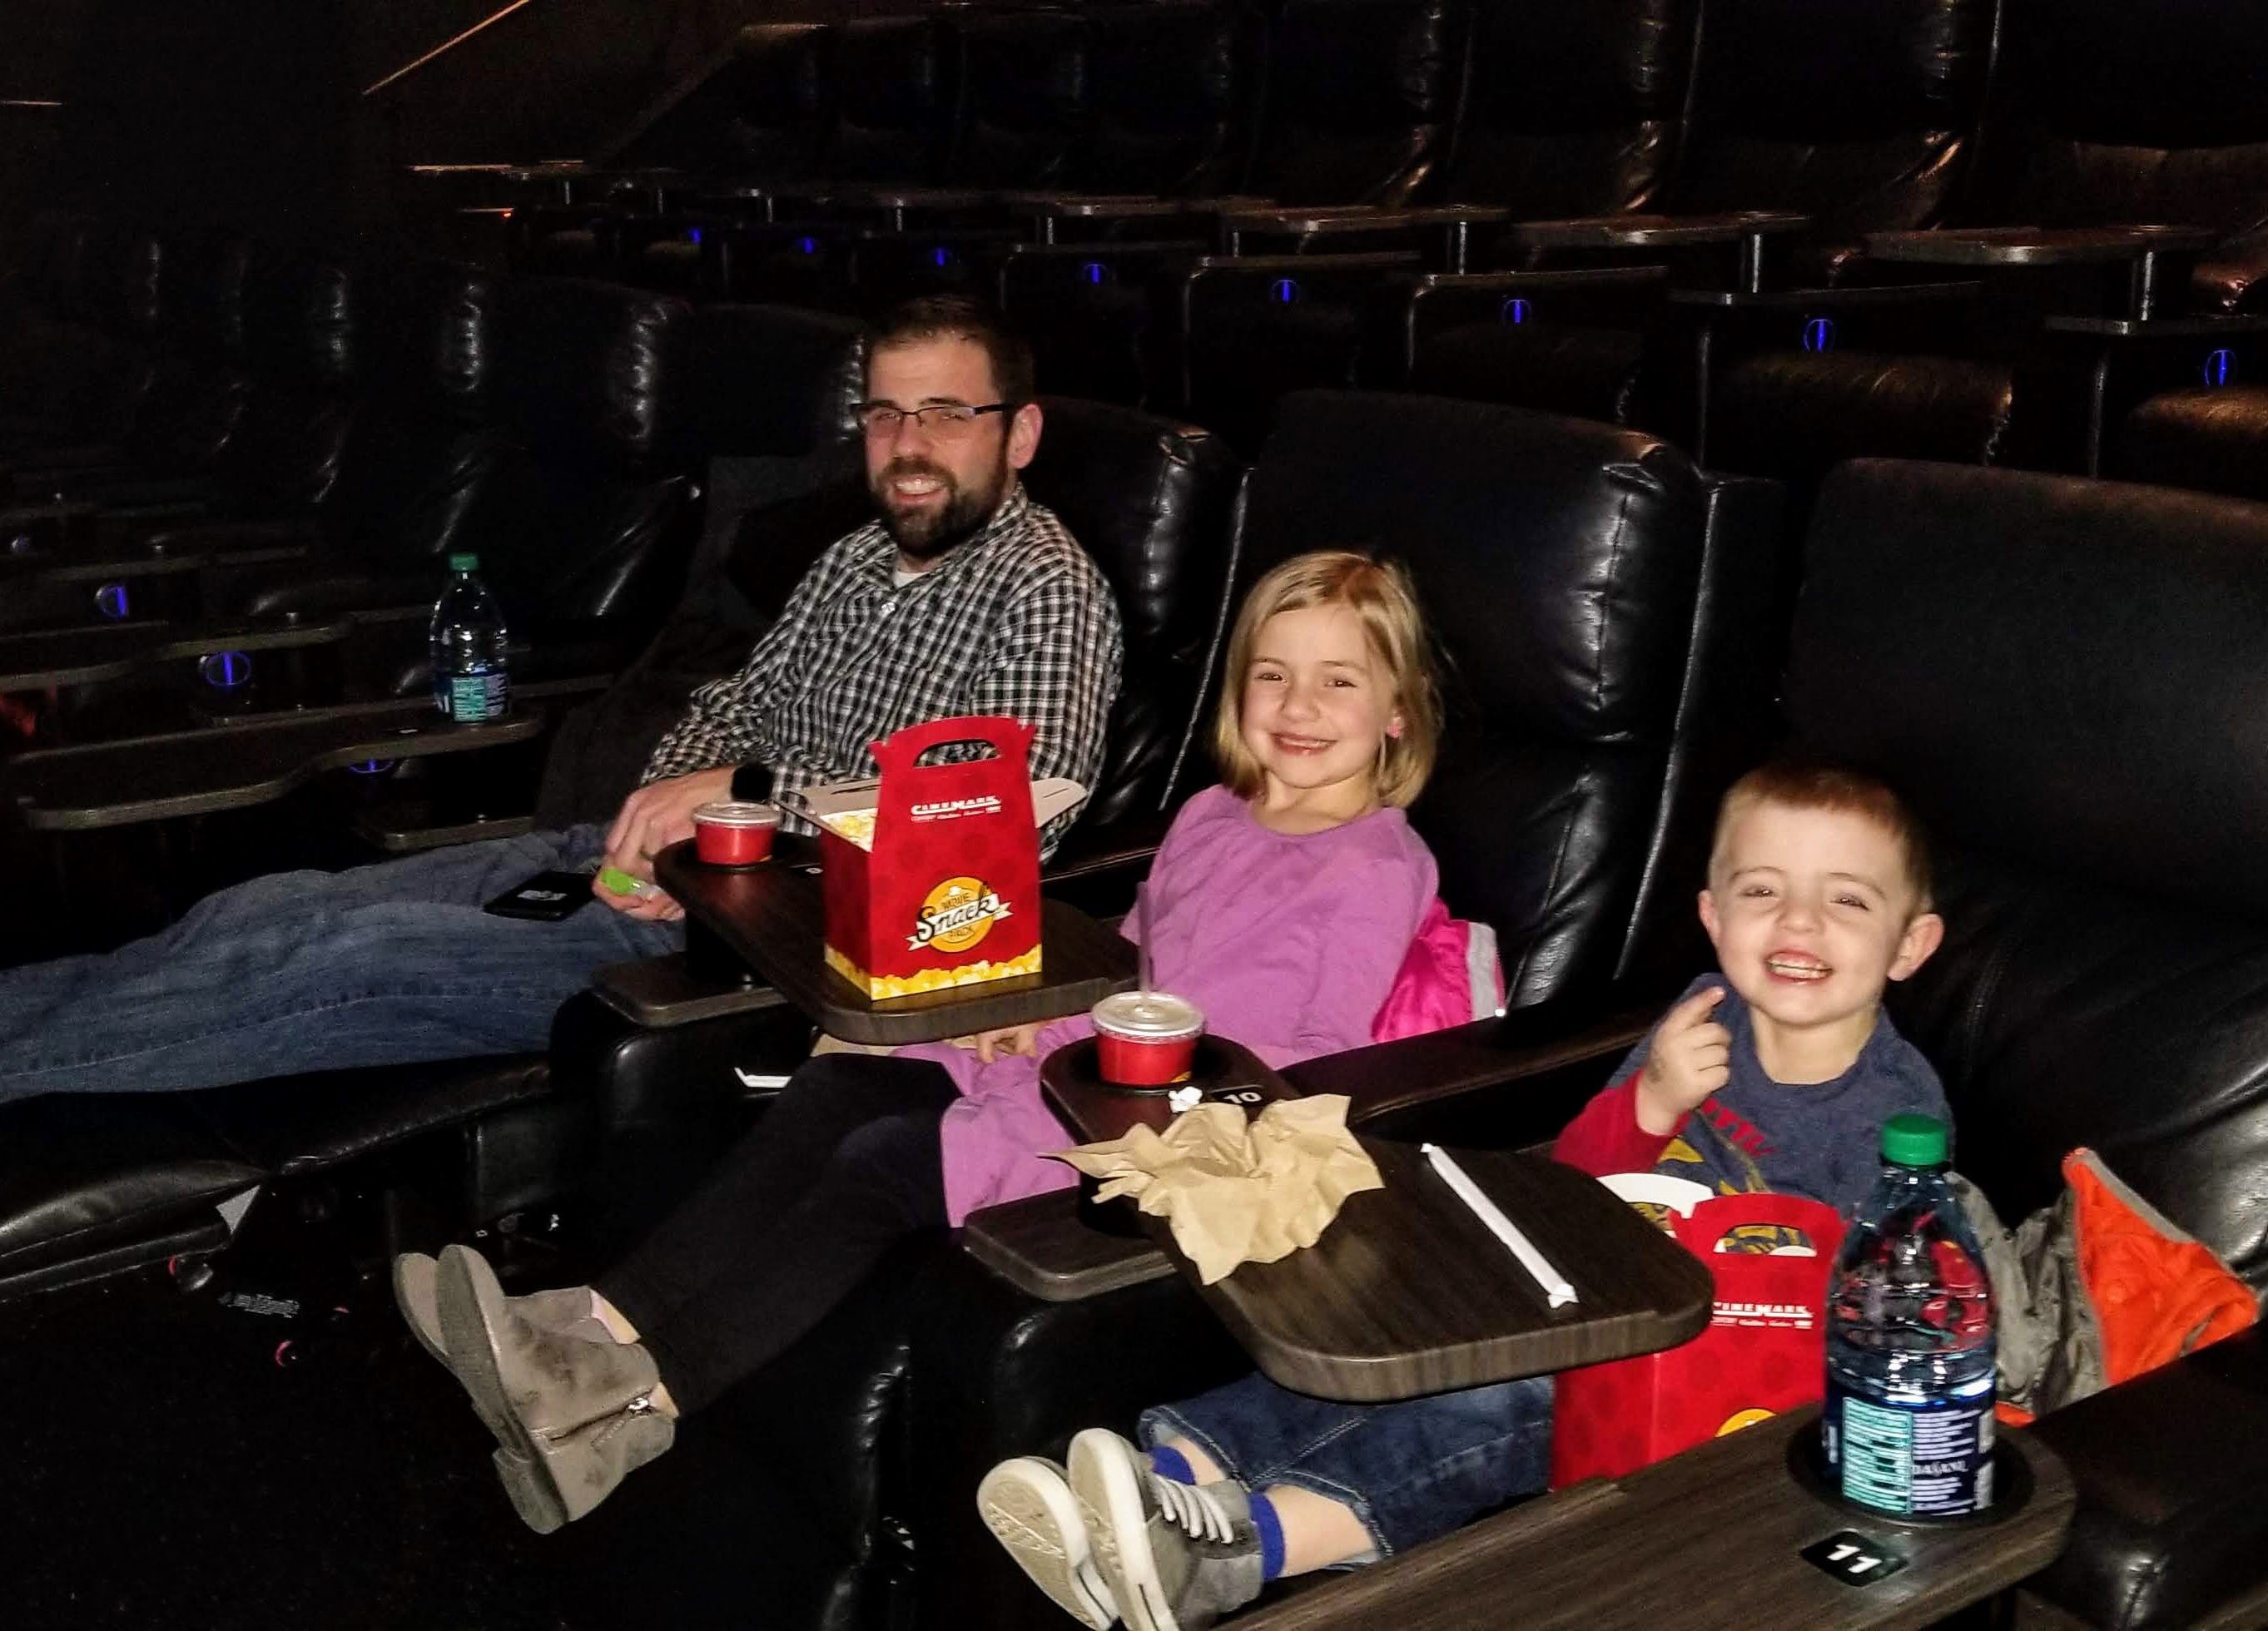 The family at a late night movie showing in an empty theater